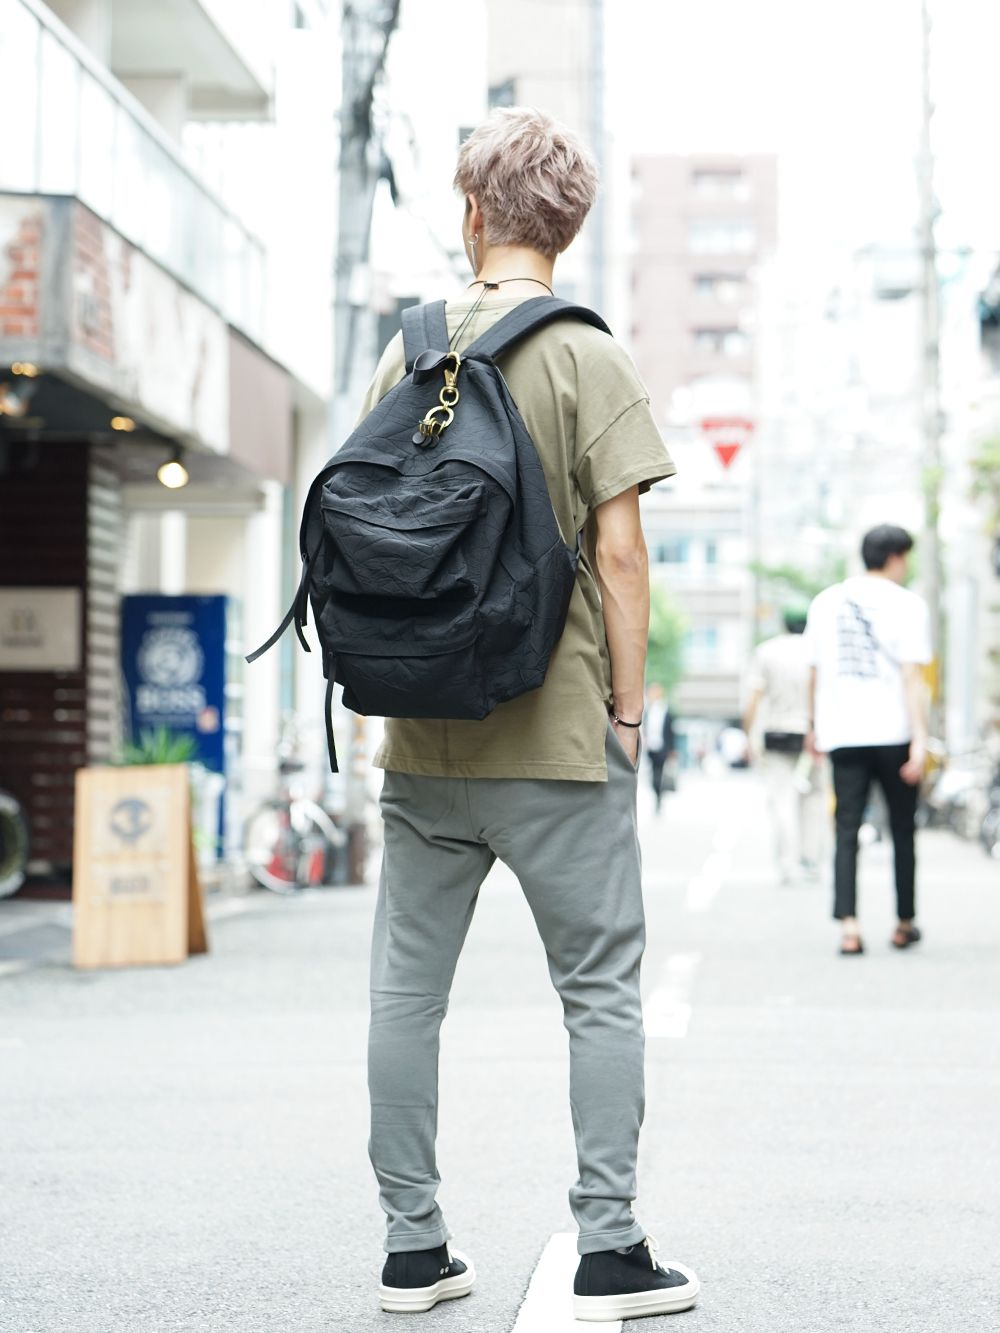 DIET BUTCHER SLIM SKIN 19AW Earth color Styling - 3-004